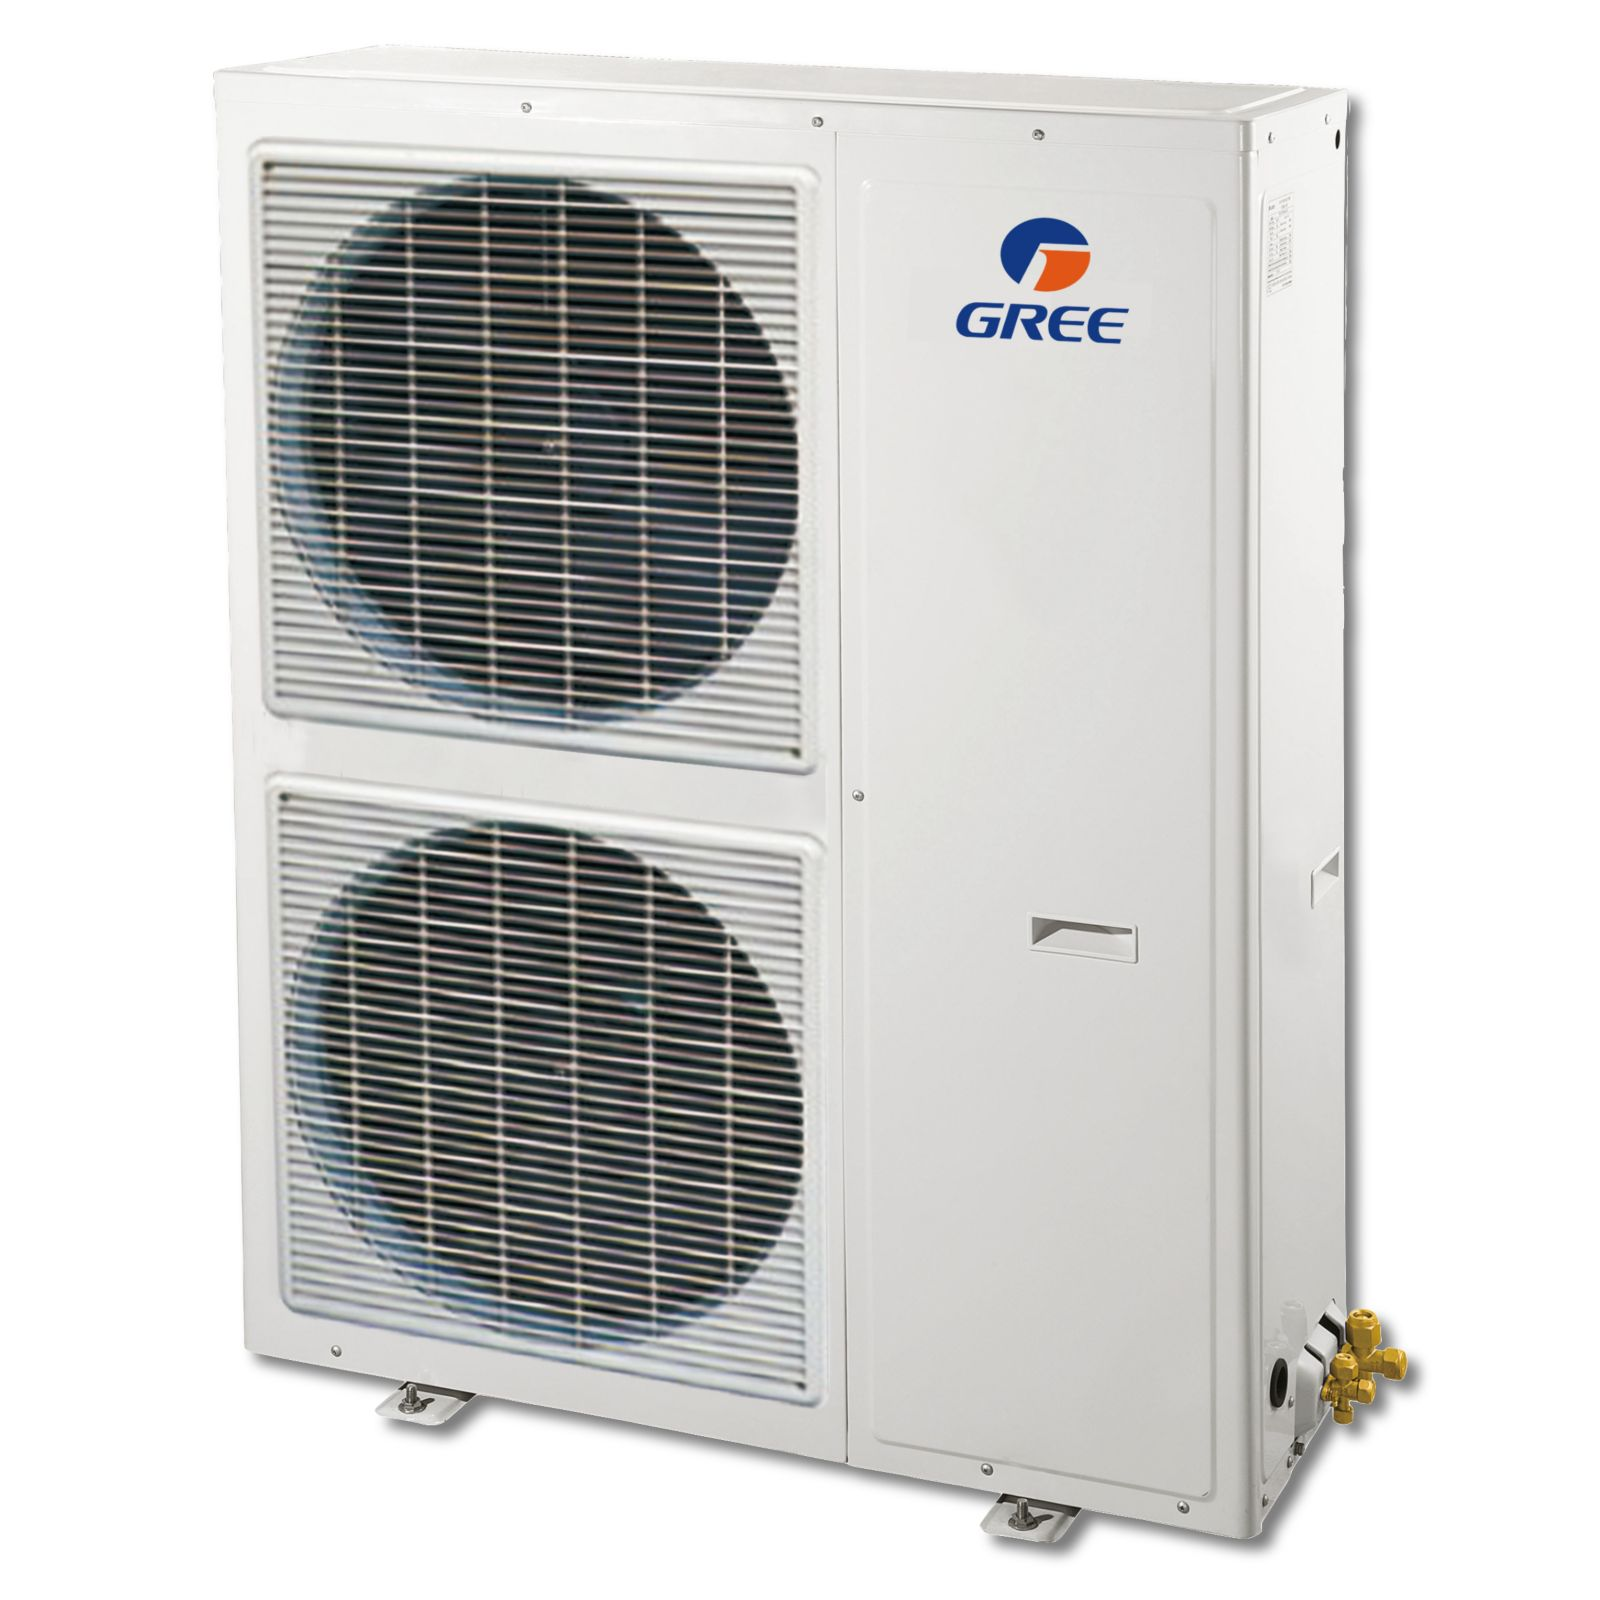 GREE UMAT48HP230V1AO - U-Match 48,000 BTU/h, 16 SEER  Inverter Heat Pump Condensing Unit, 208-230 Volt, 60 Hz